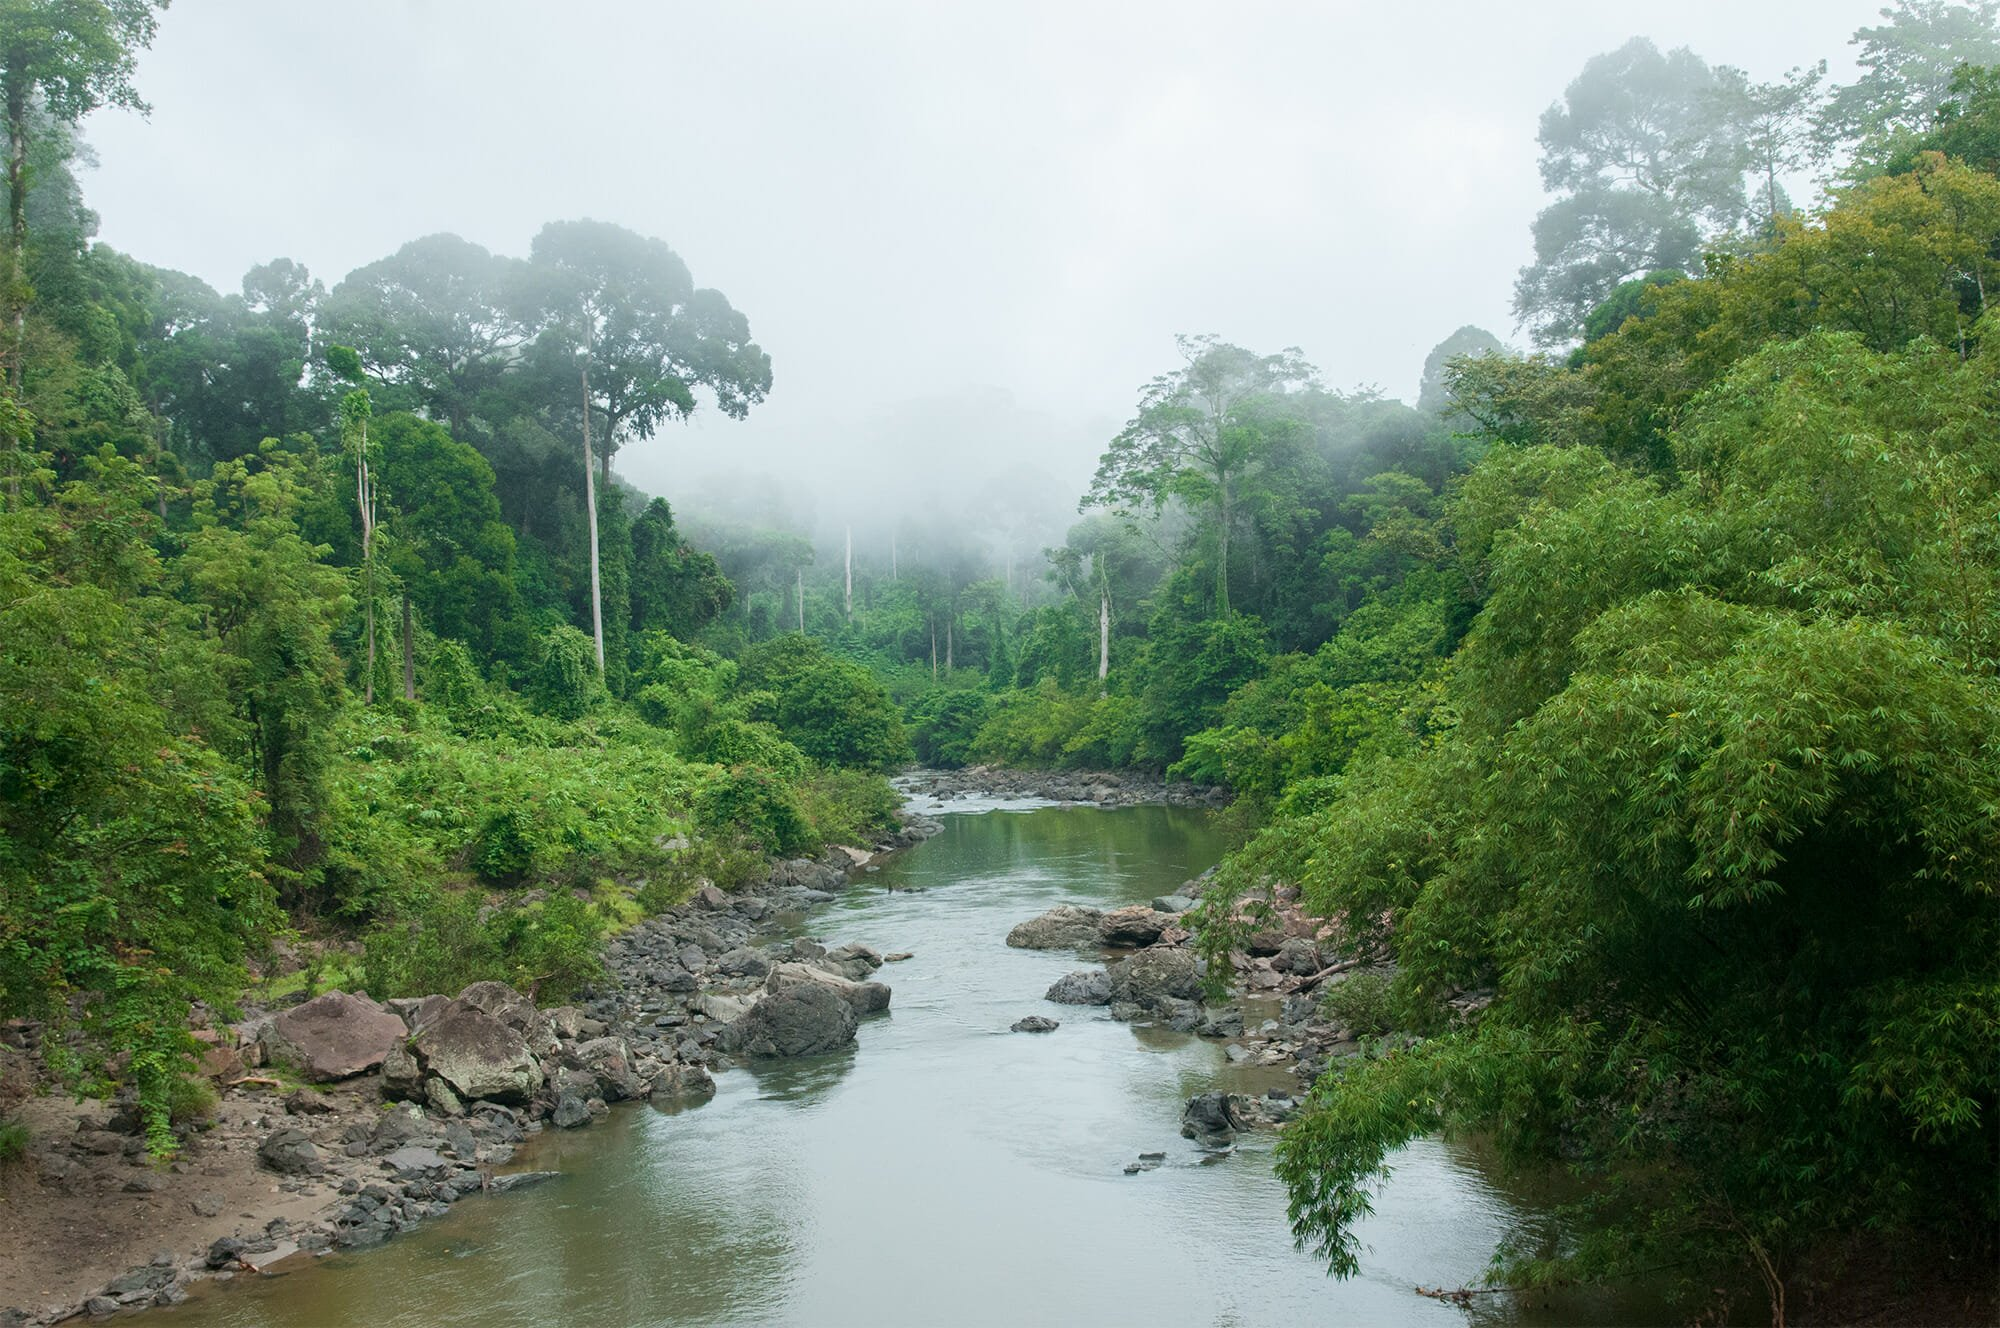 Ancient rainforest of Danum Valley, Borneo